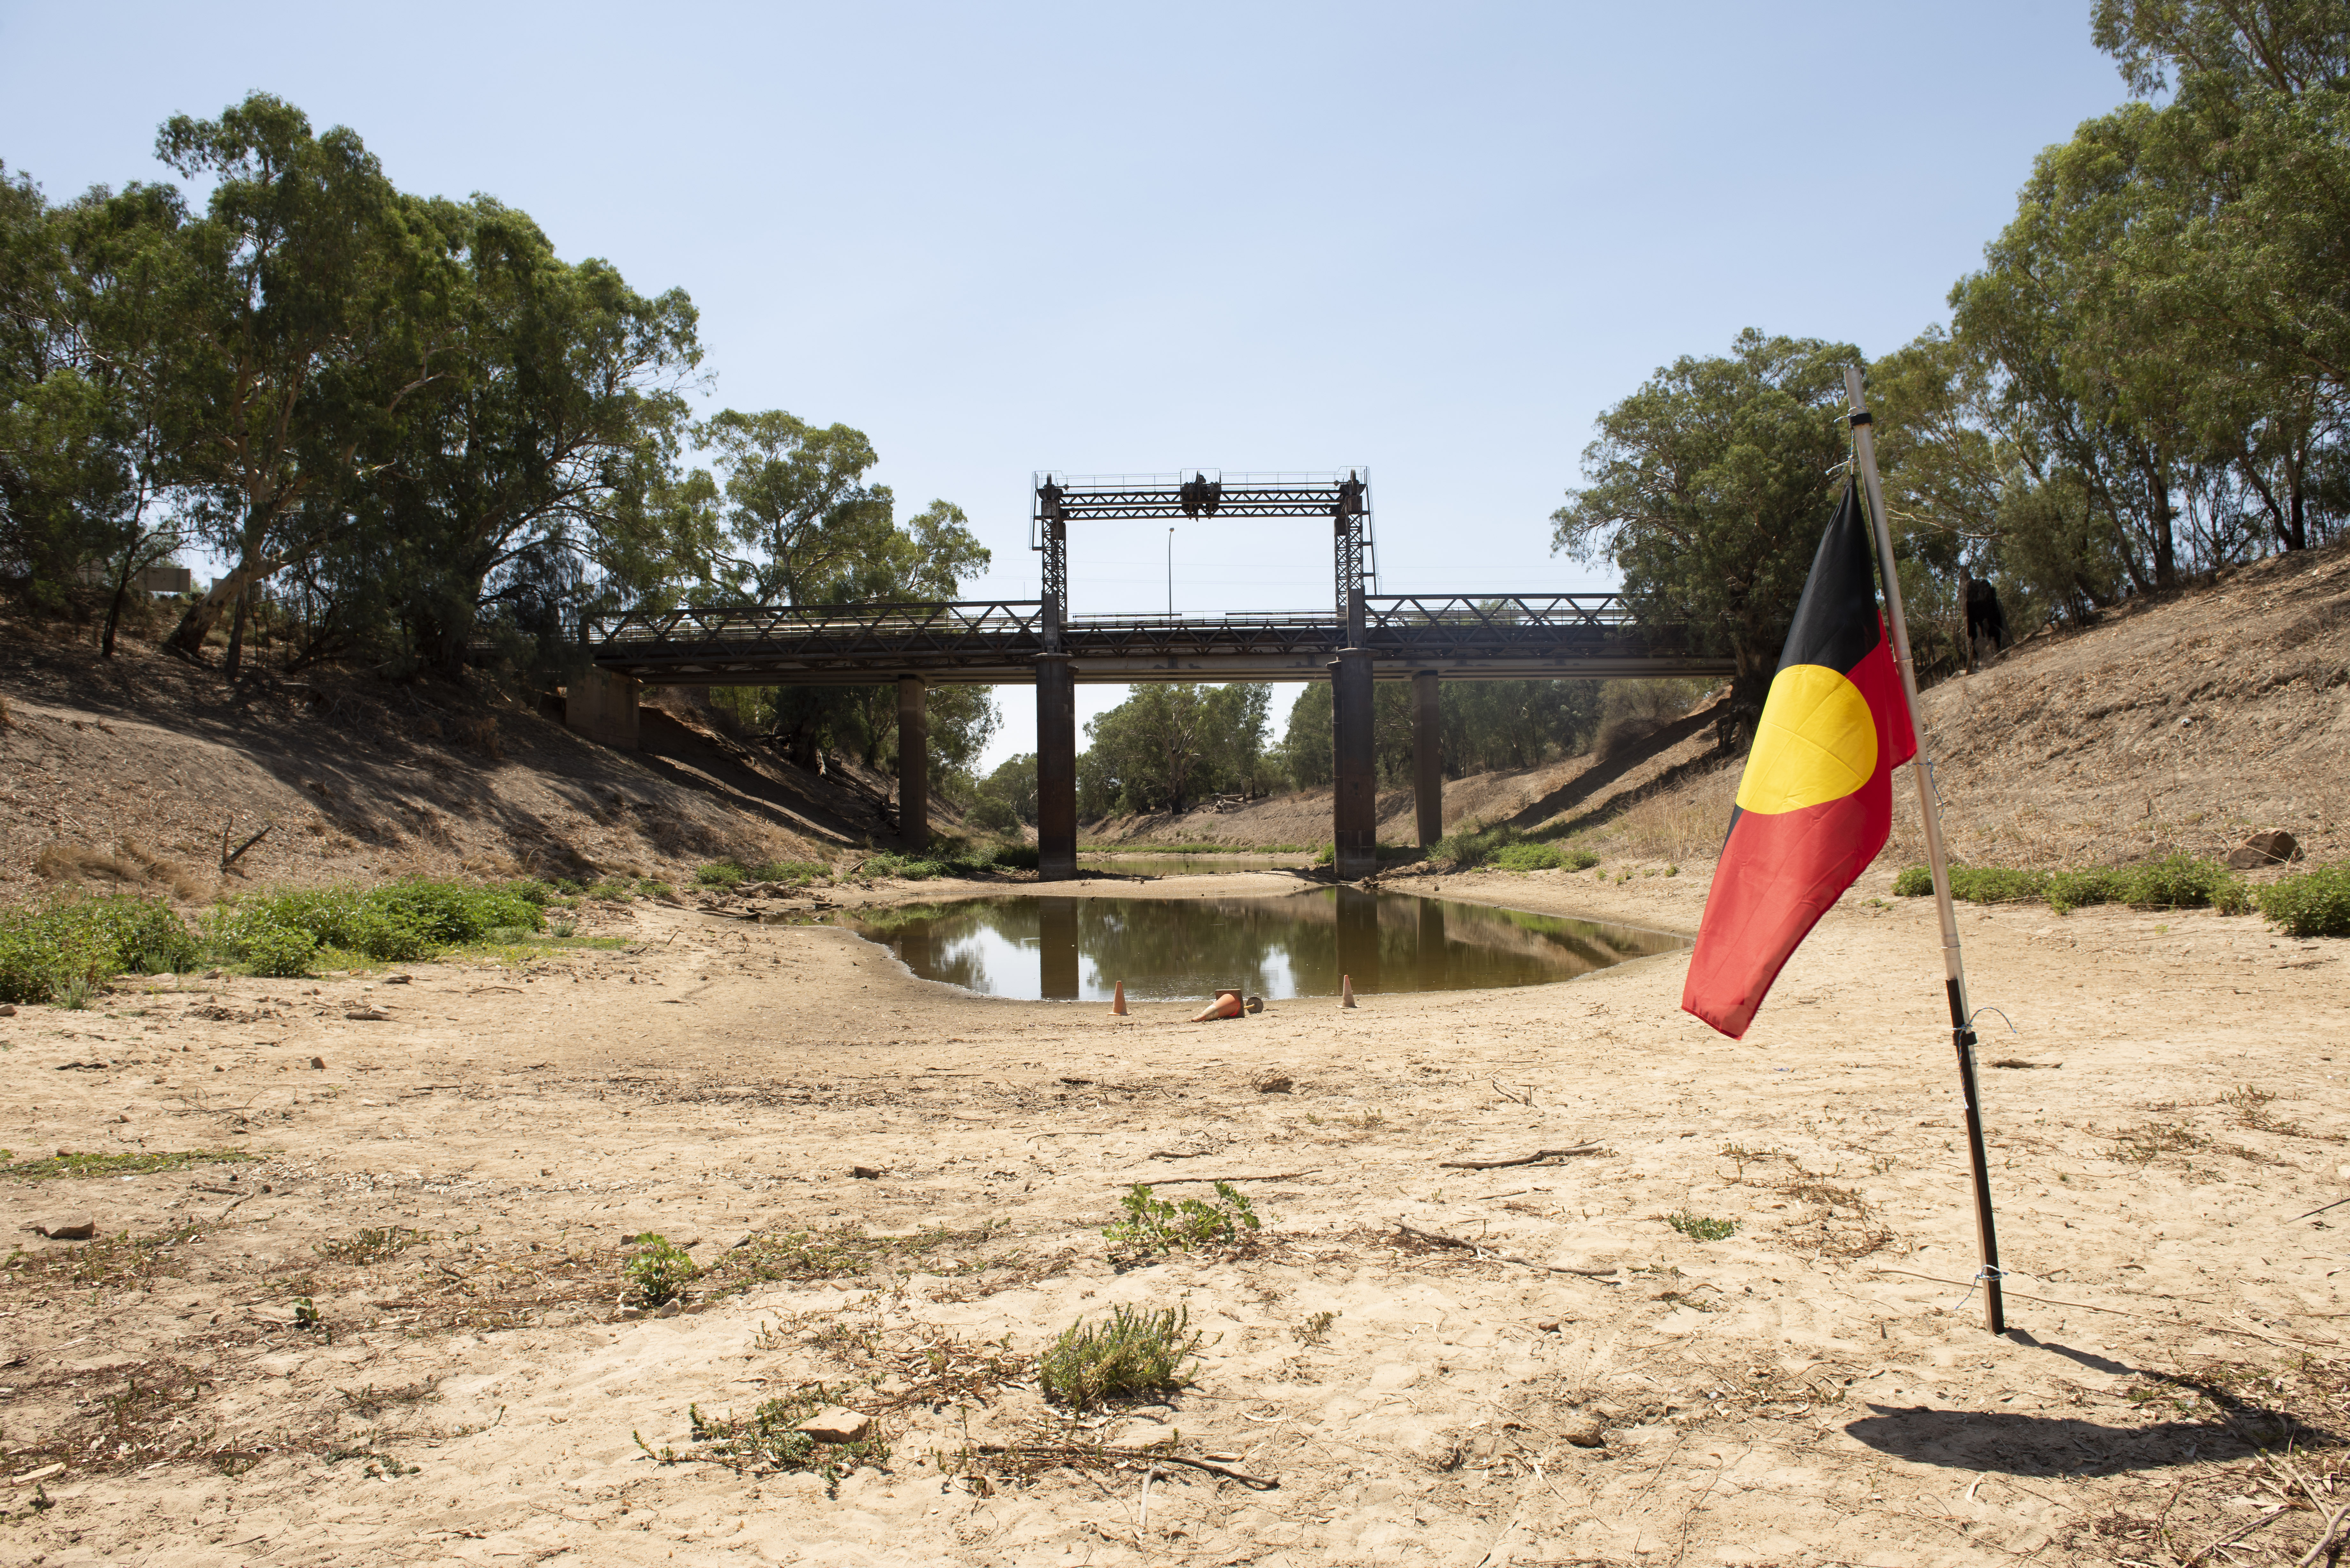 An Aboriginal flag is planted in a dry riverbed